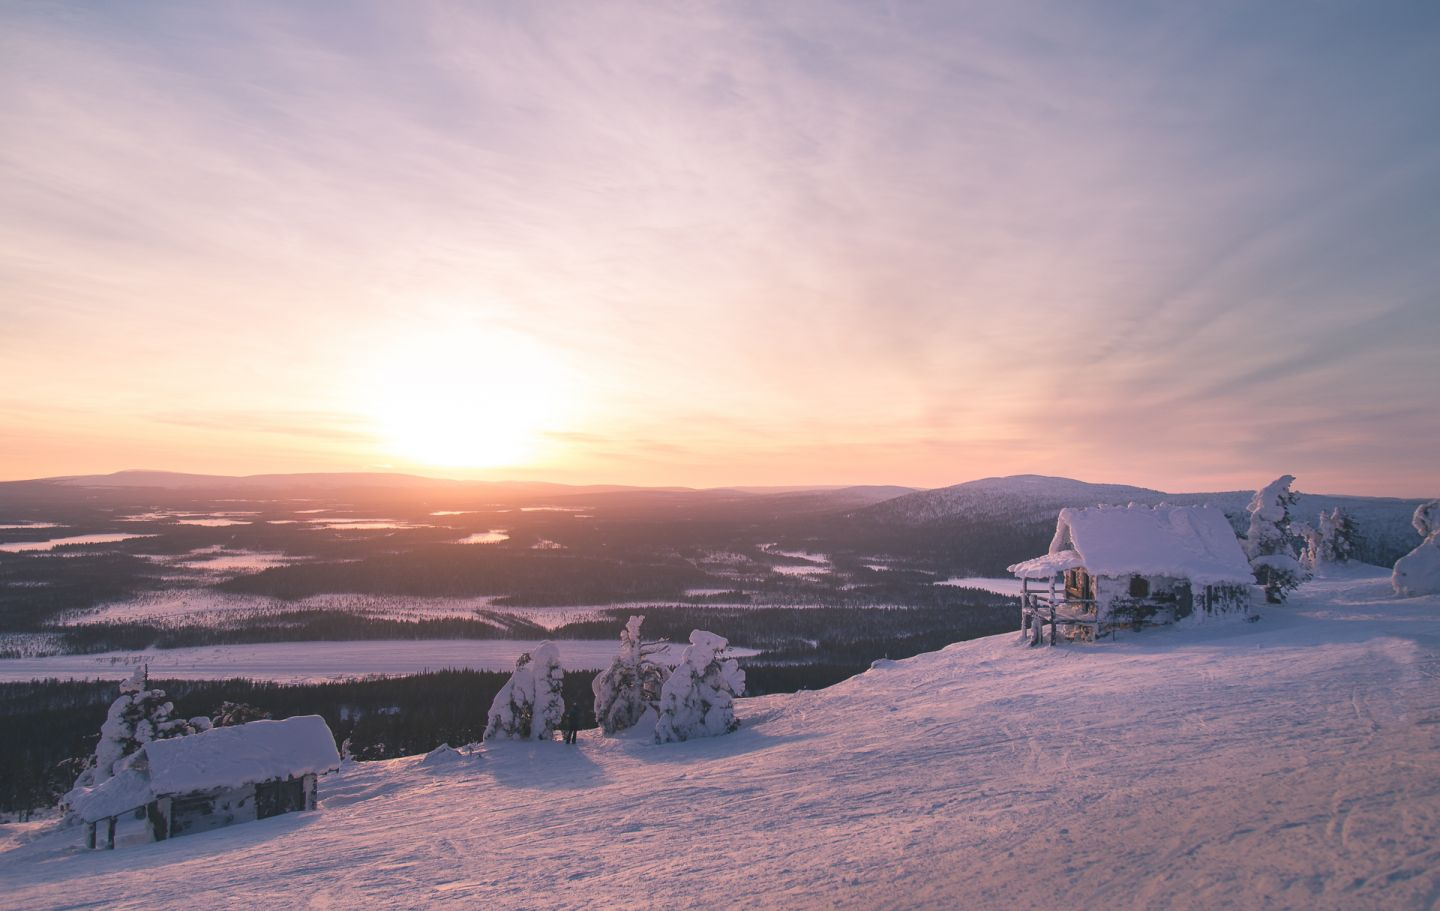 Polar night above holiday cabins in Lapland Finland